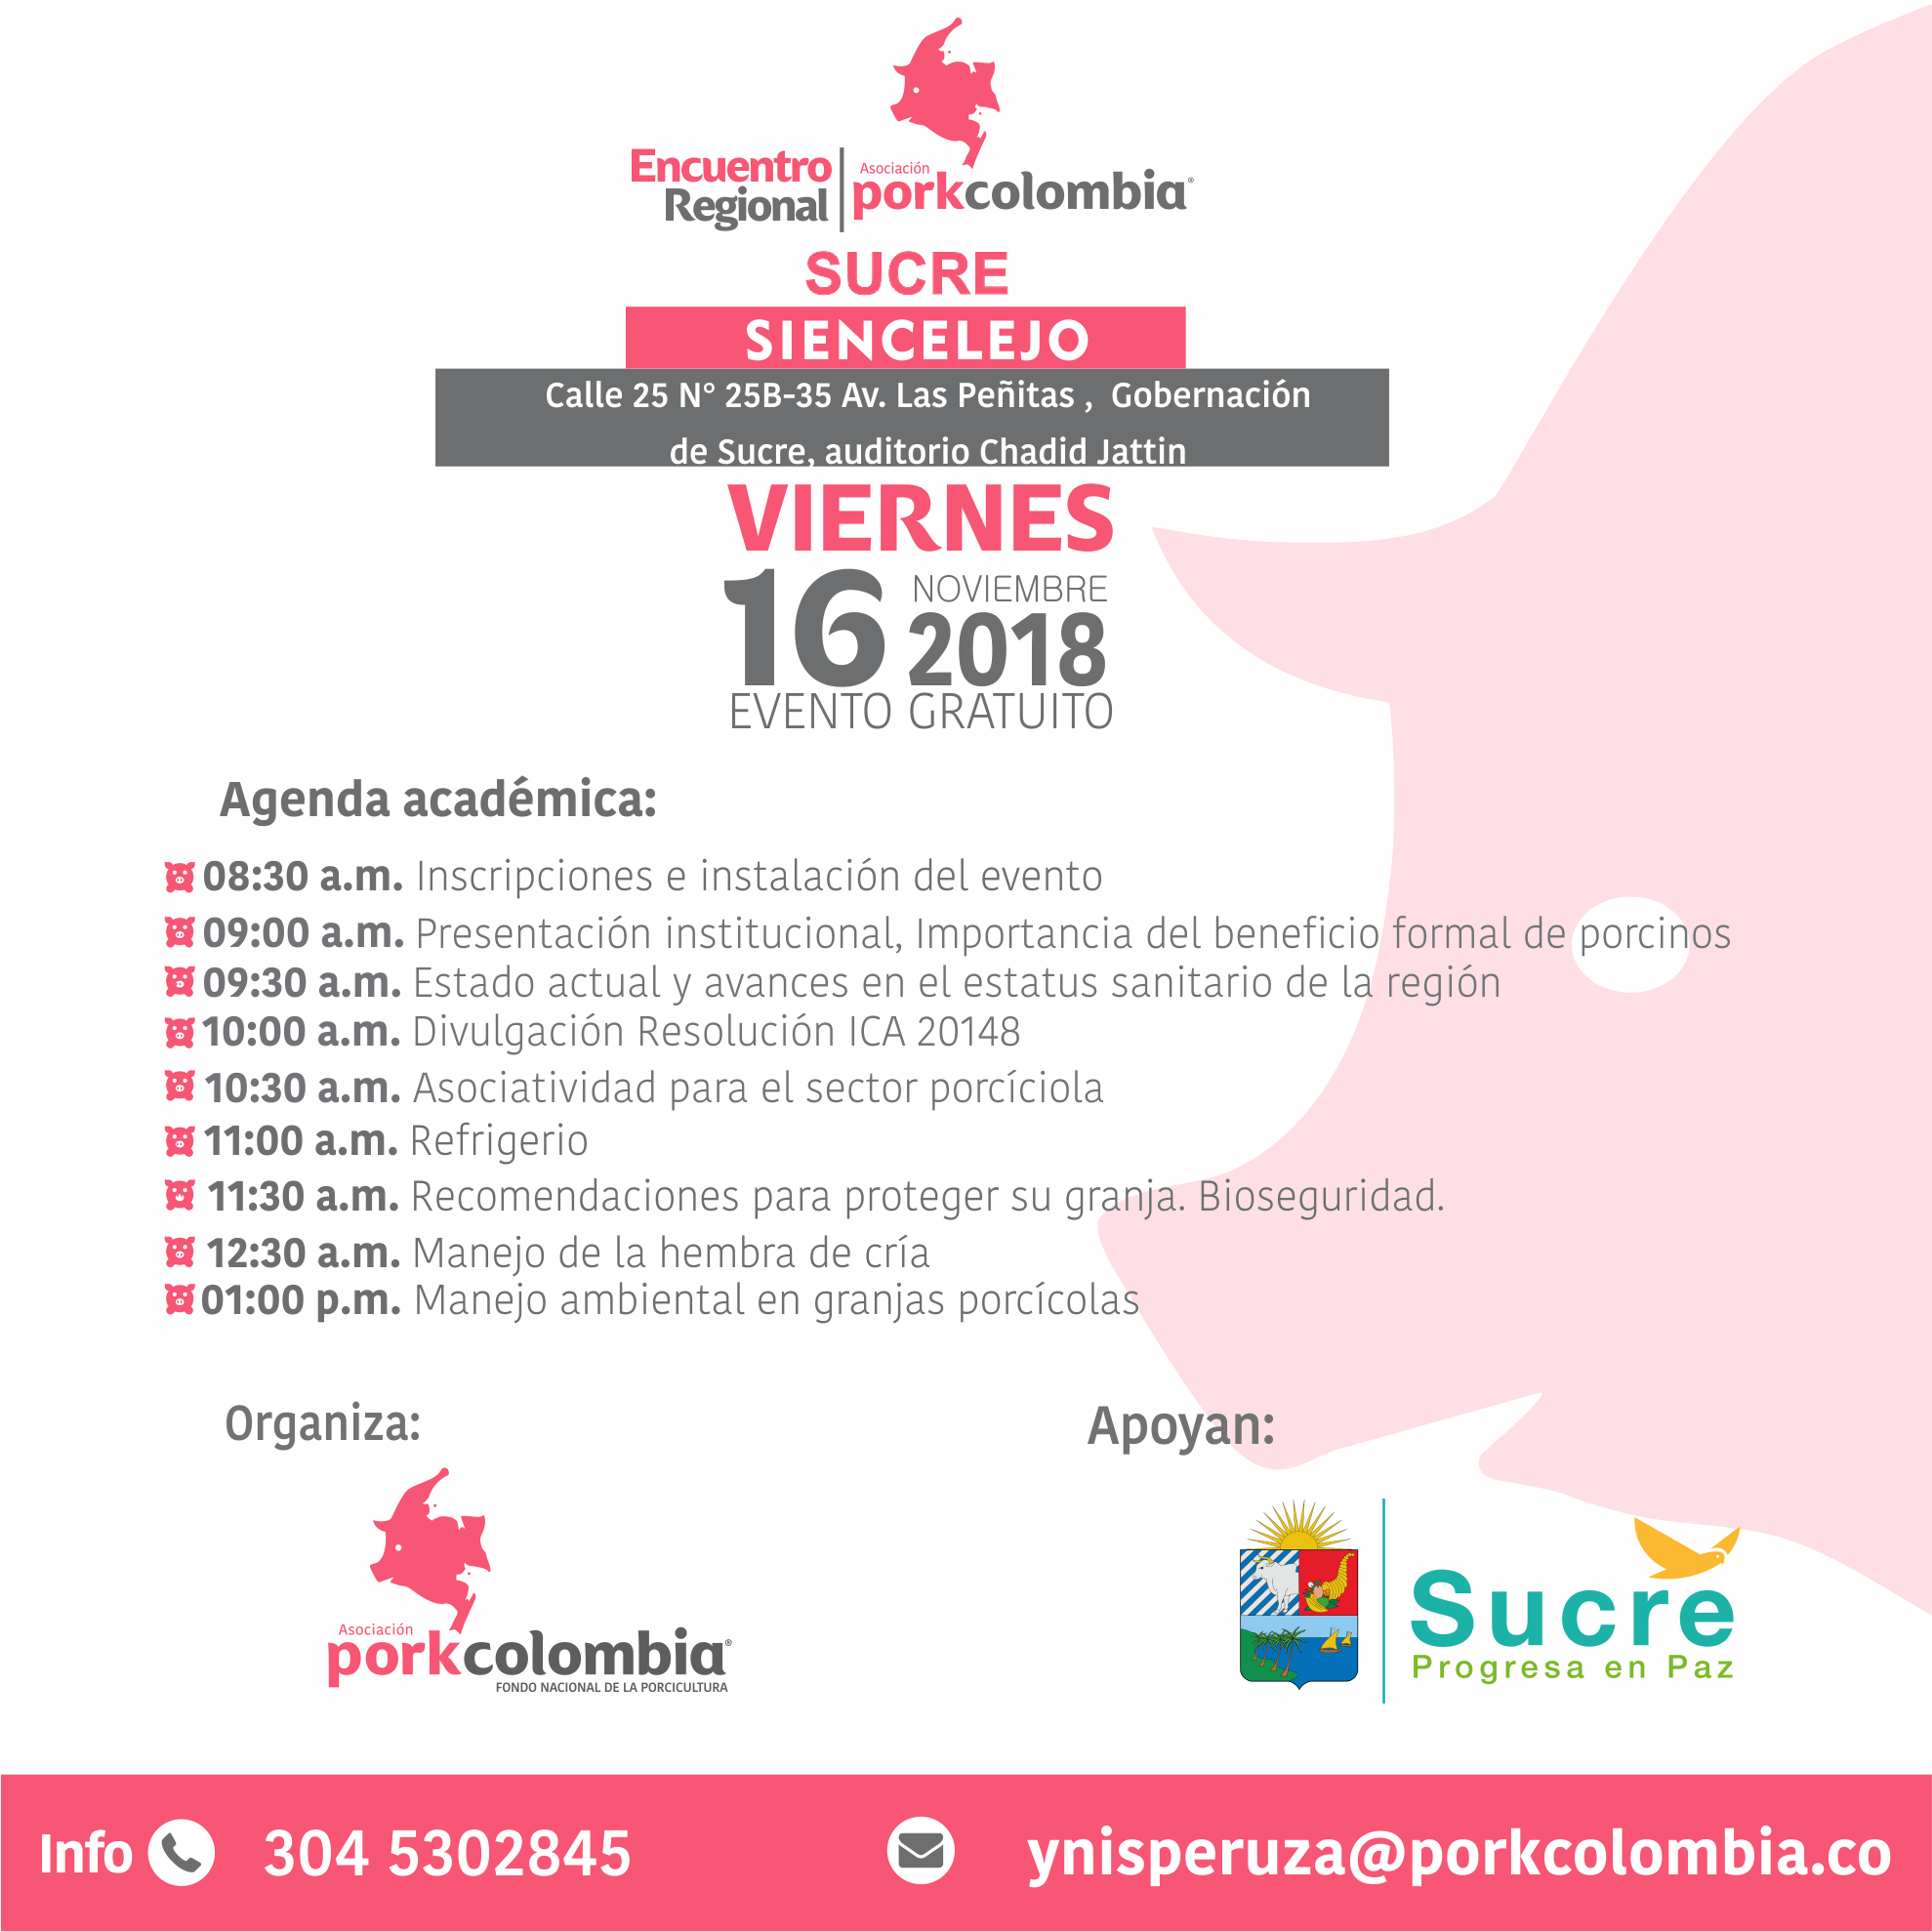 https://www.porkcolombia.co/wp-content/uploads/2018/10/ENCUENTRO_16_NOV.png